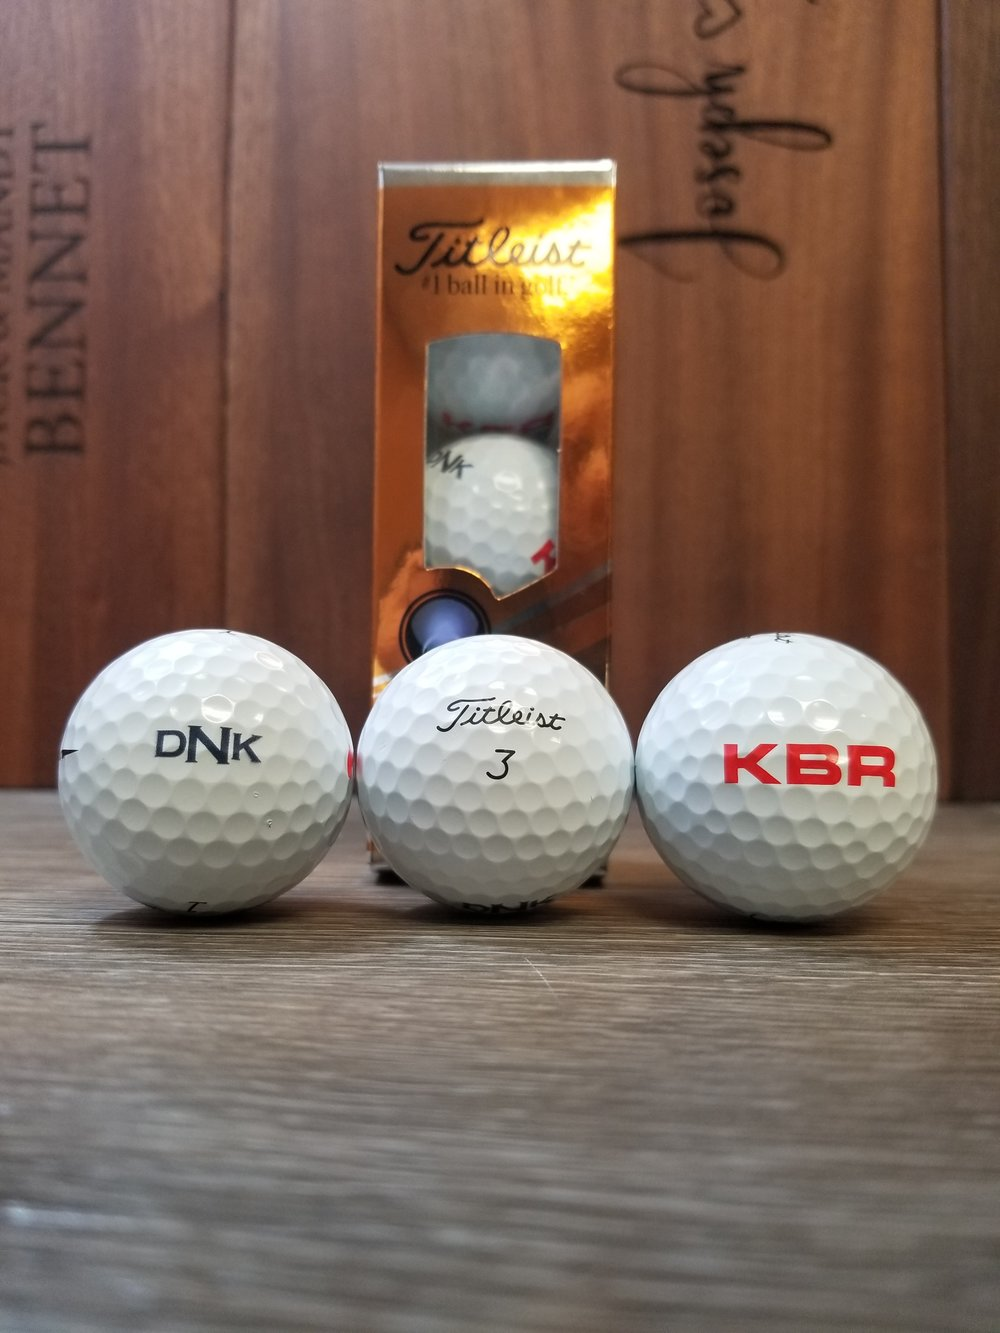 Branded Golf Balls - Branded Marketing Giveaways - Branded Marketing Materials - Branded Event Swag - Corporate Identity Projects - Branding Projects from Engrave It Houston